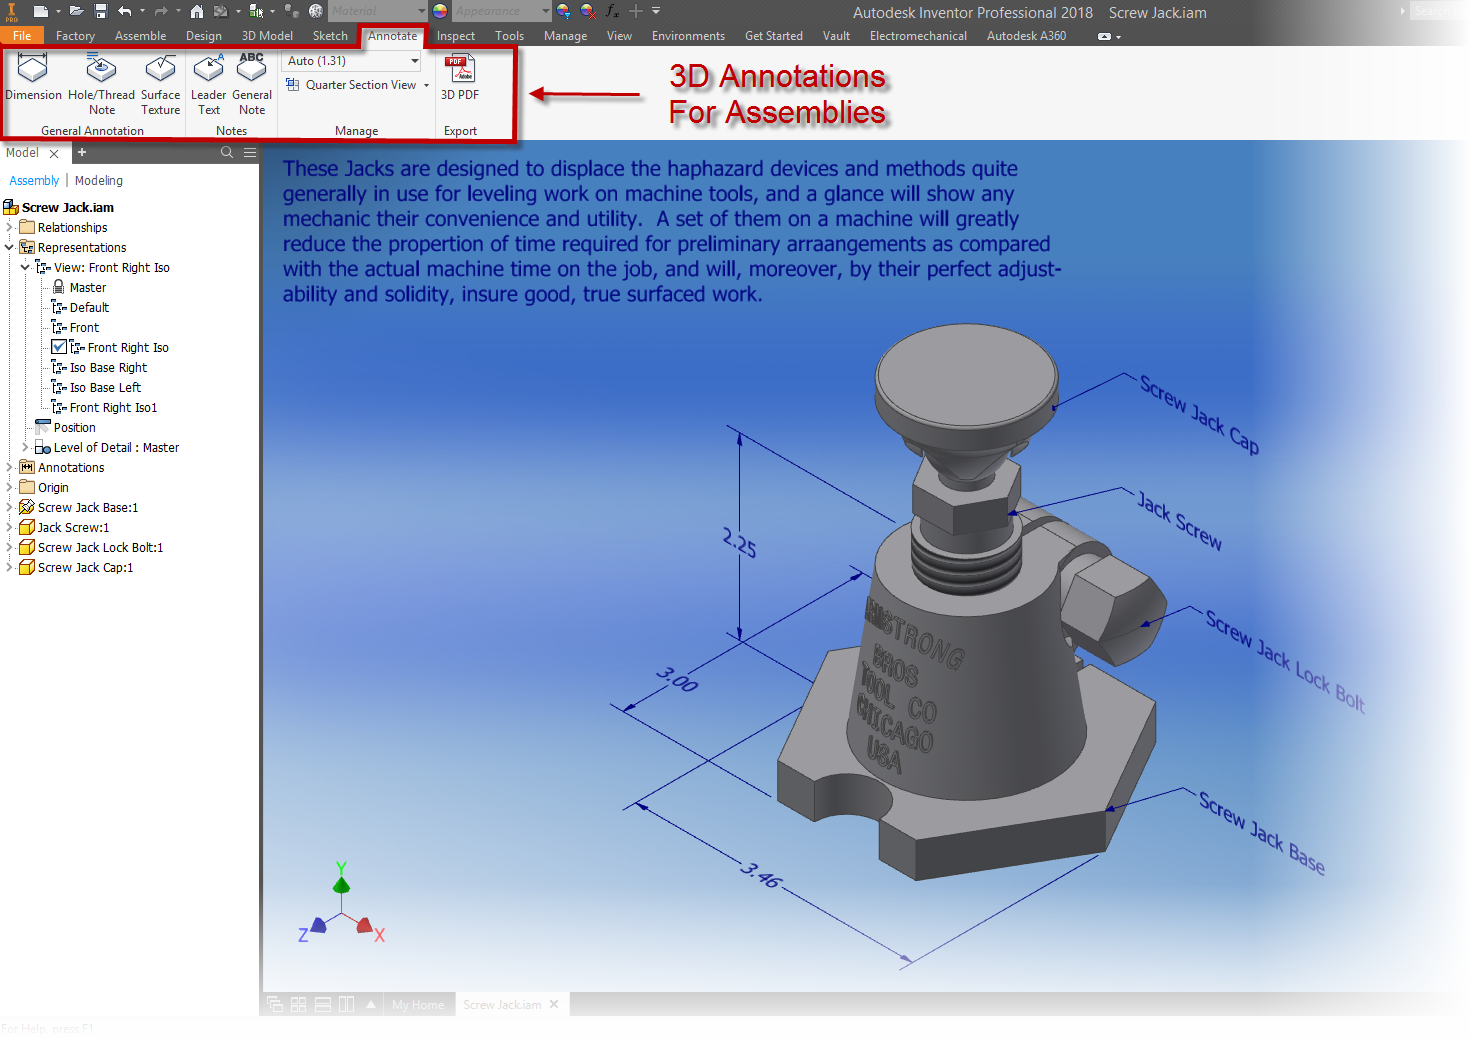 Model Based Definition With Autodesk Inventor - IMAGINiT